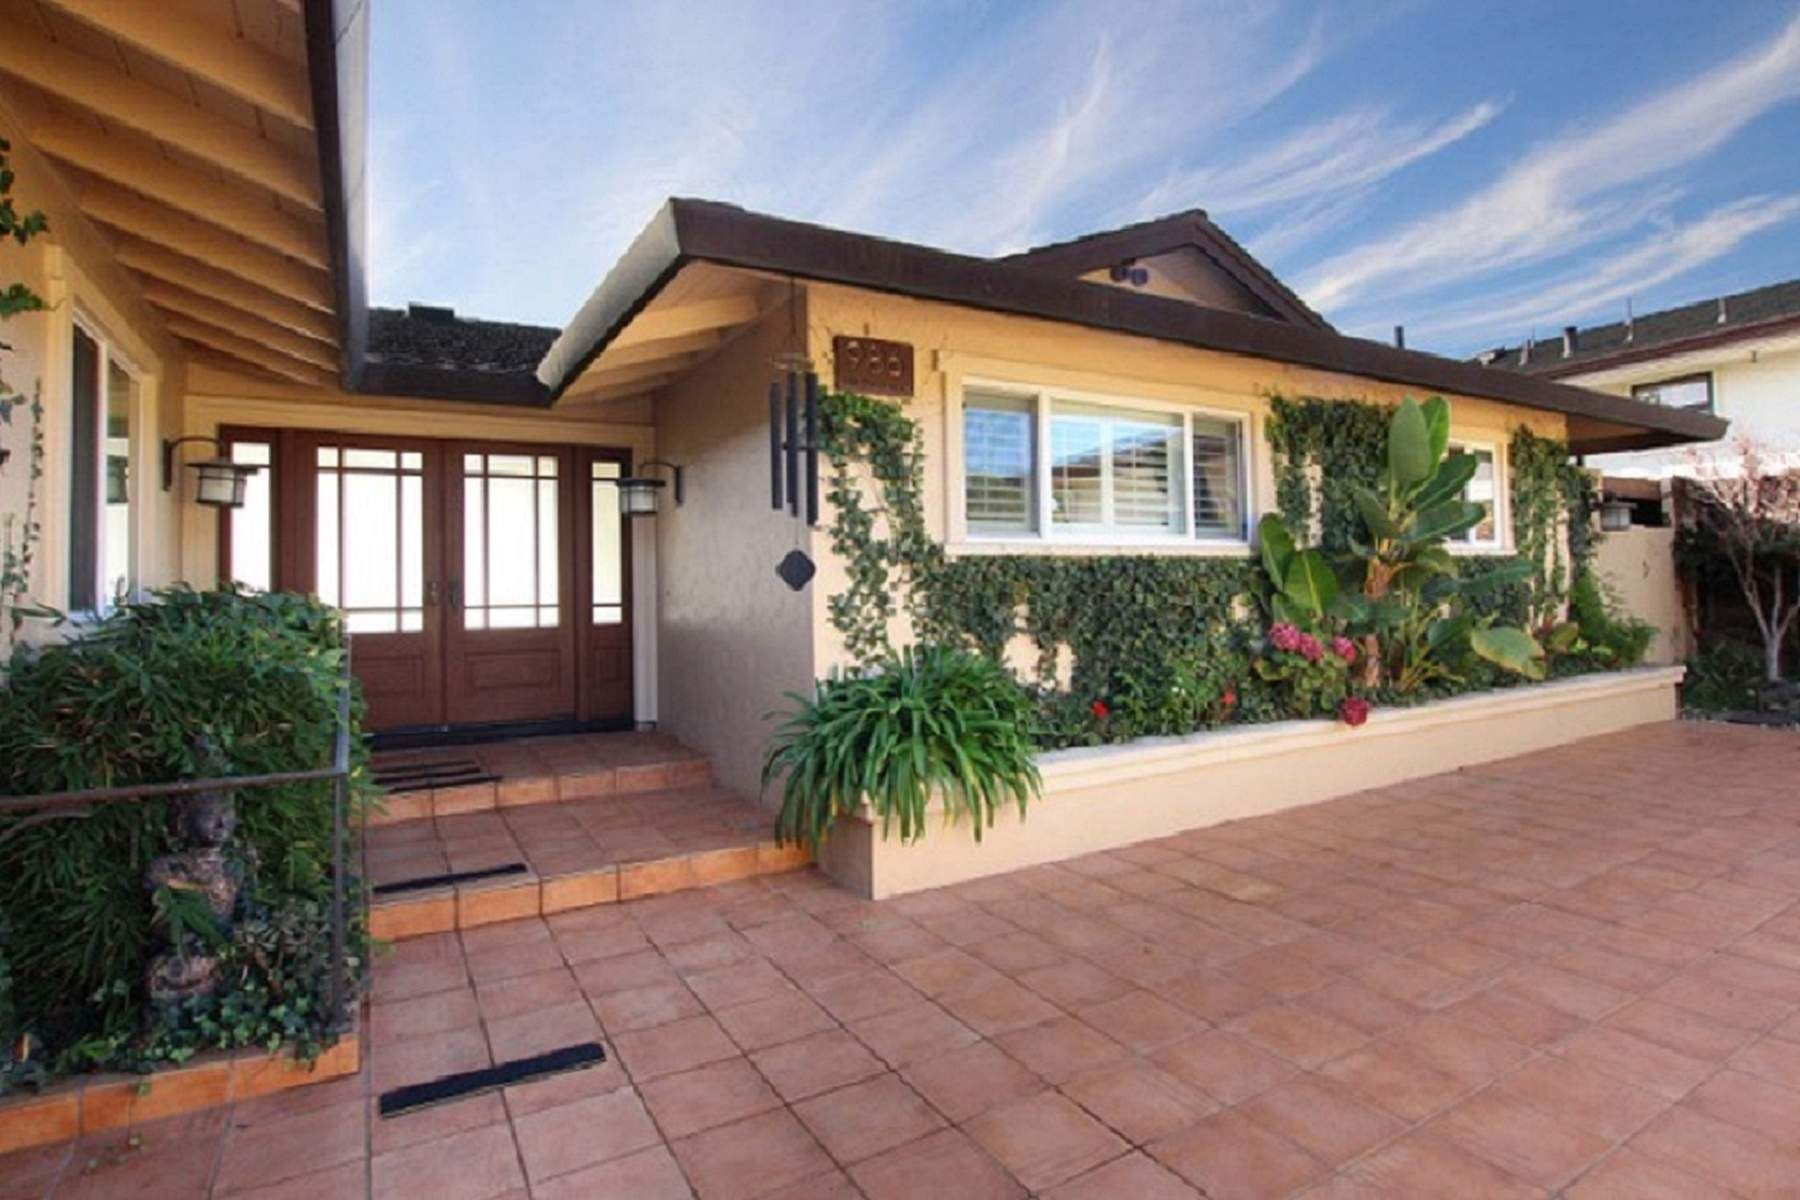 Single Family Home for Sale at Oceanfront, White Water & Sand Views 986 Via Palo Alto Aptos, California 95003 United States